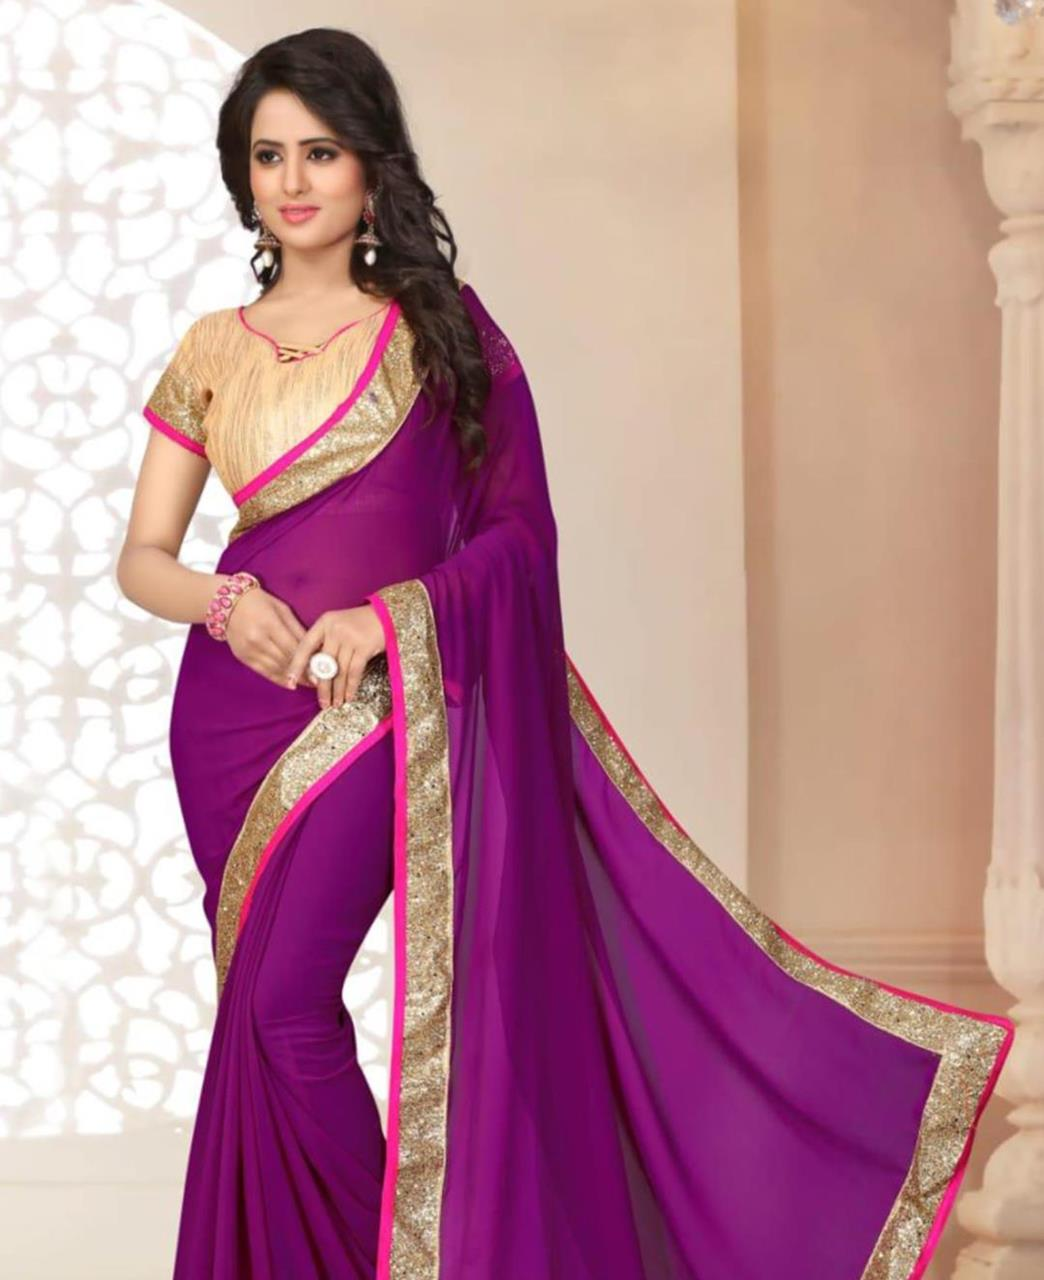 Lace Georgette Saree (Sari) in Violet